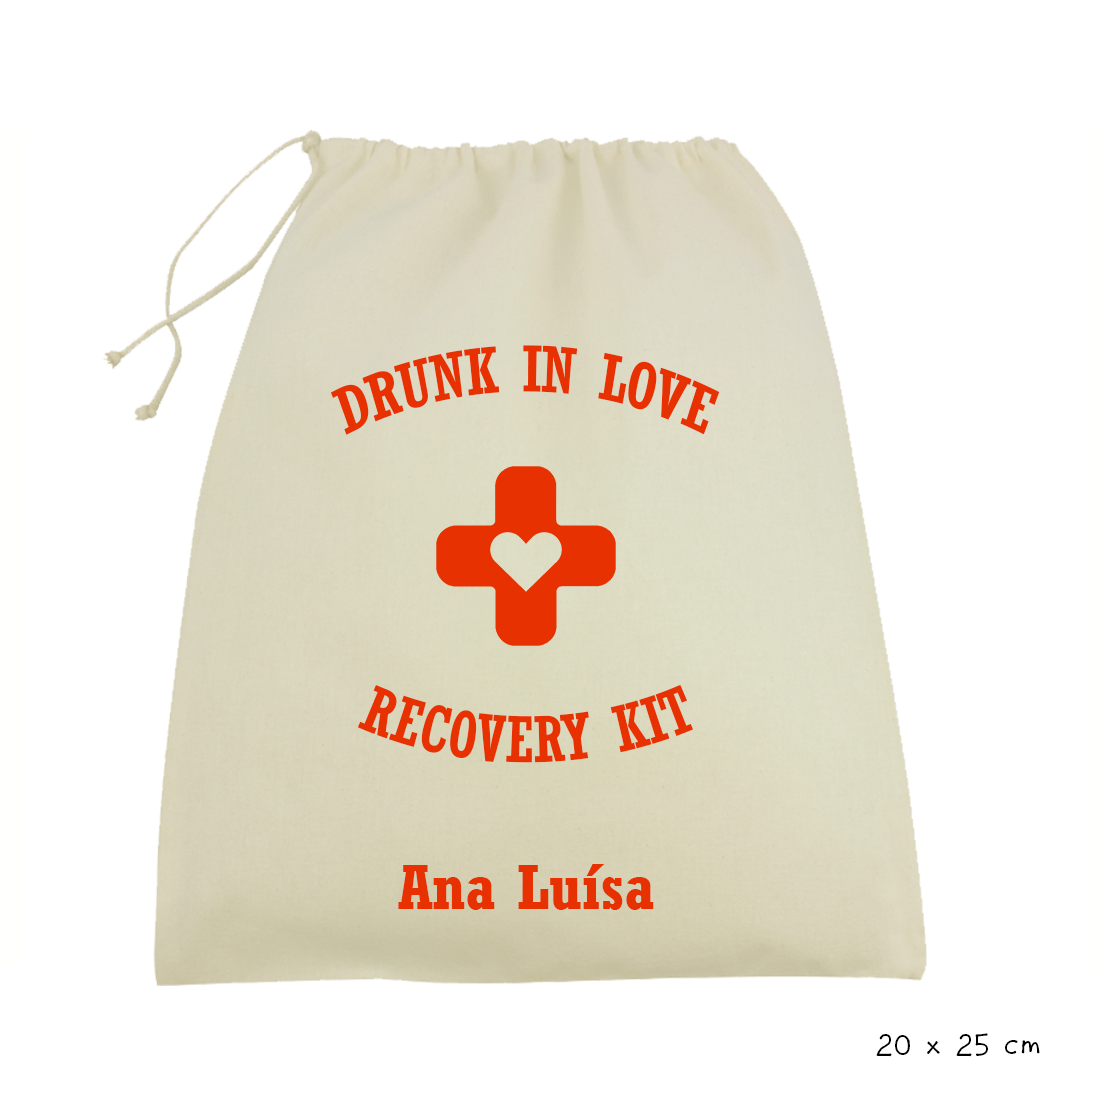 Recovery Kit #2 (pack de 10 unidades)